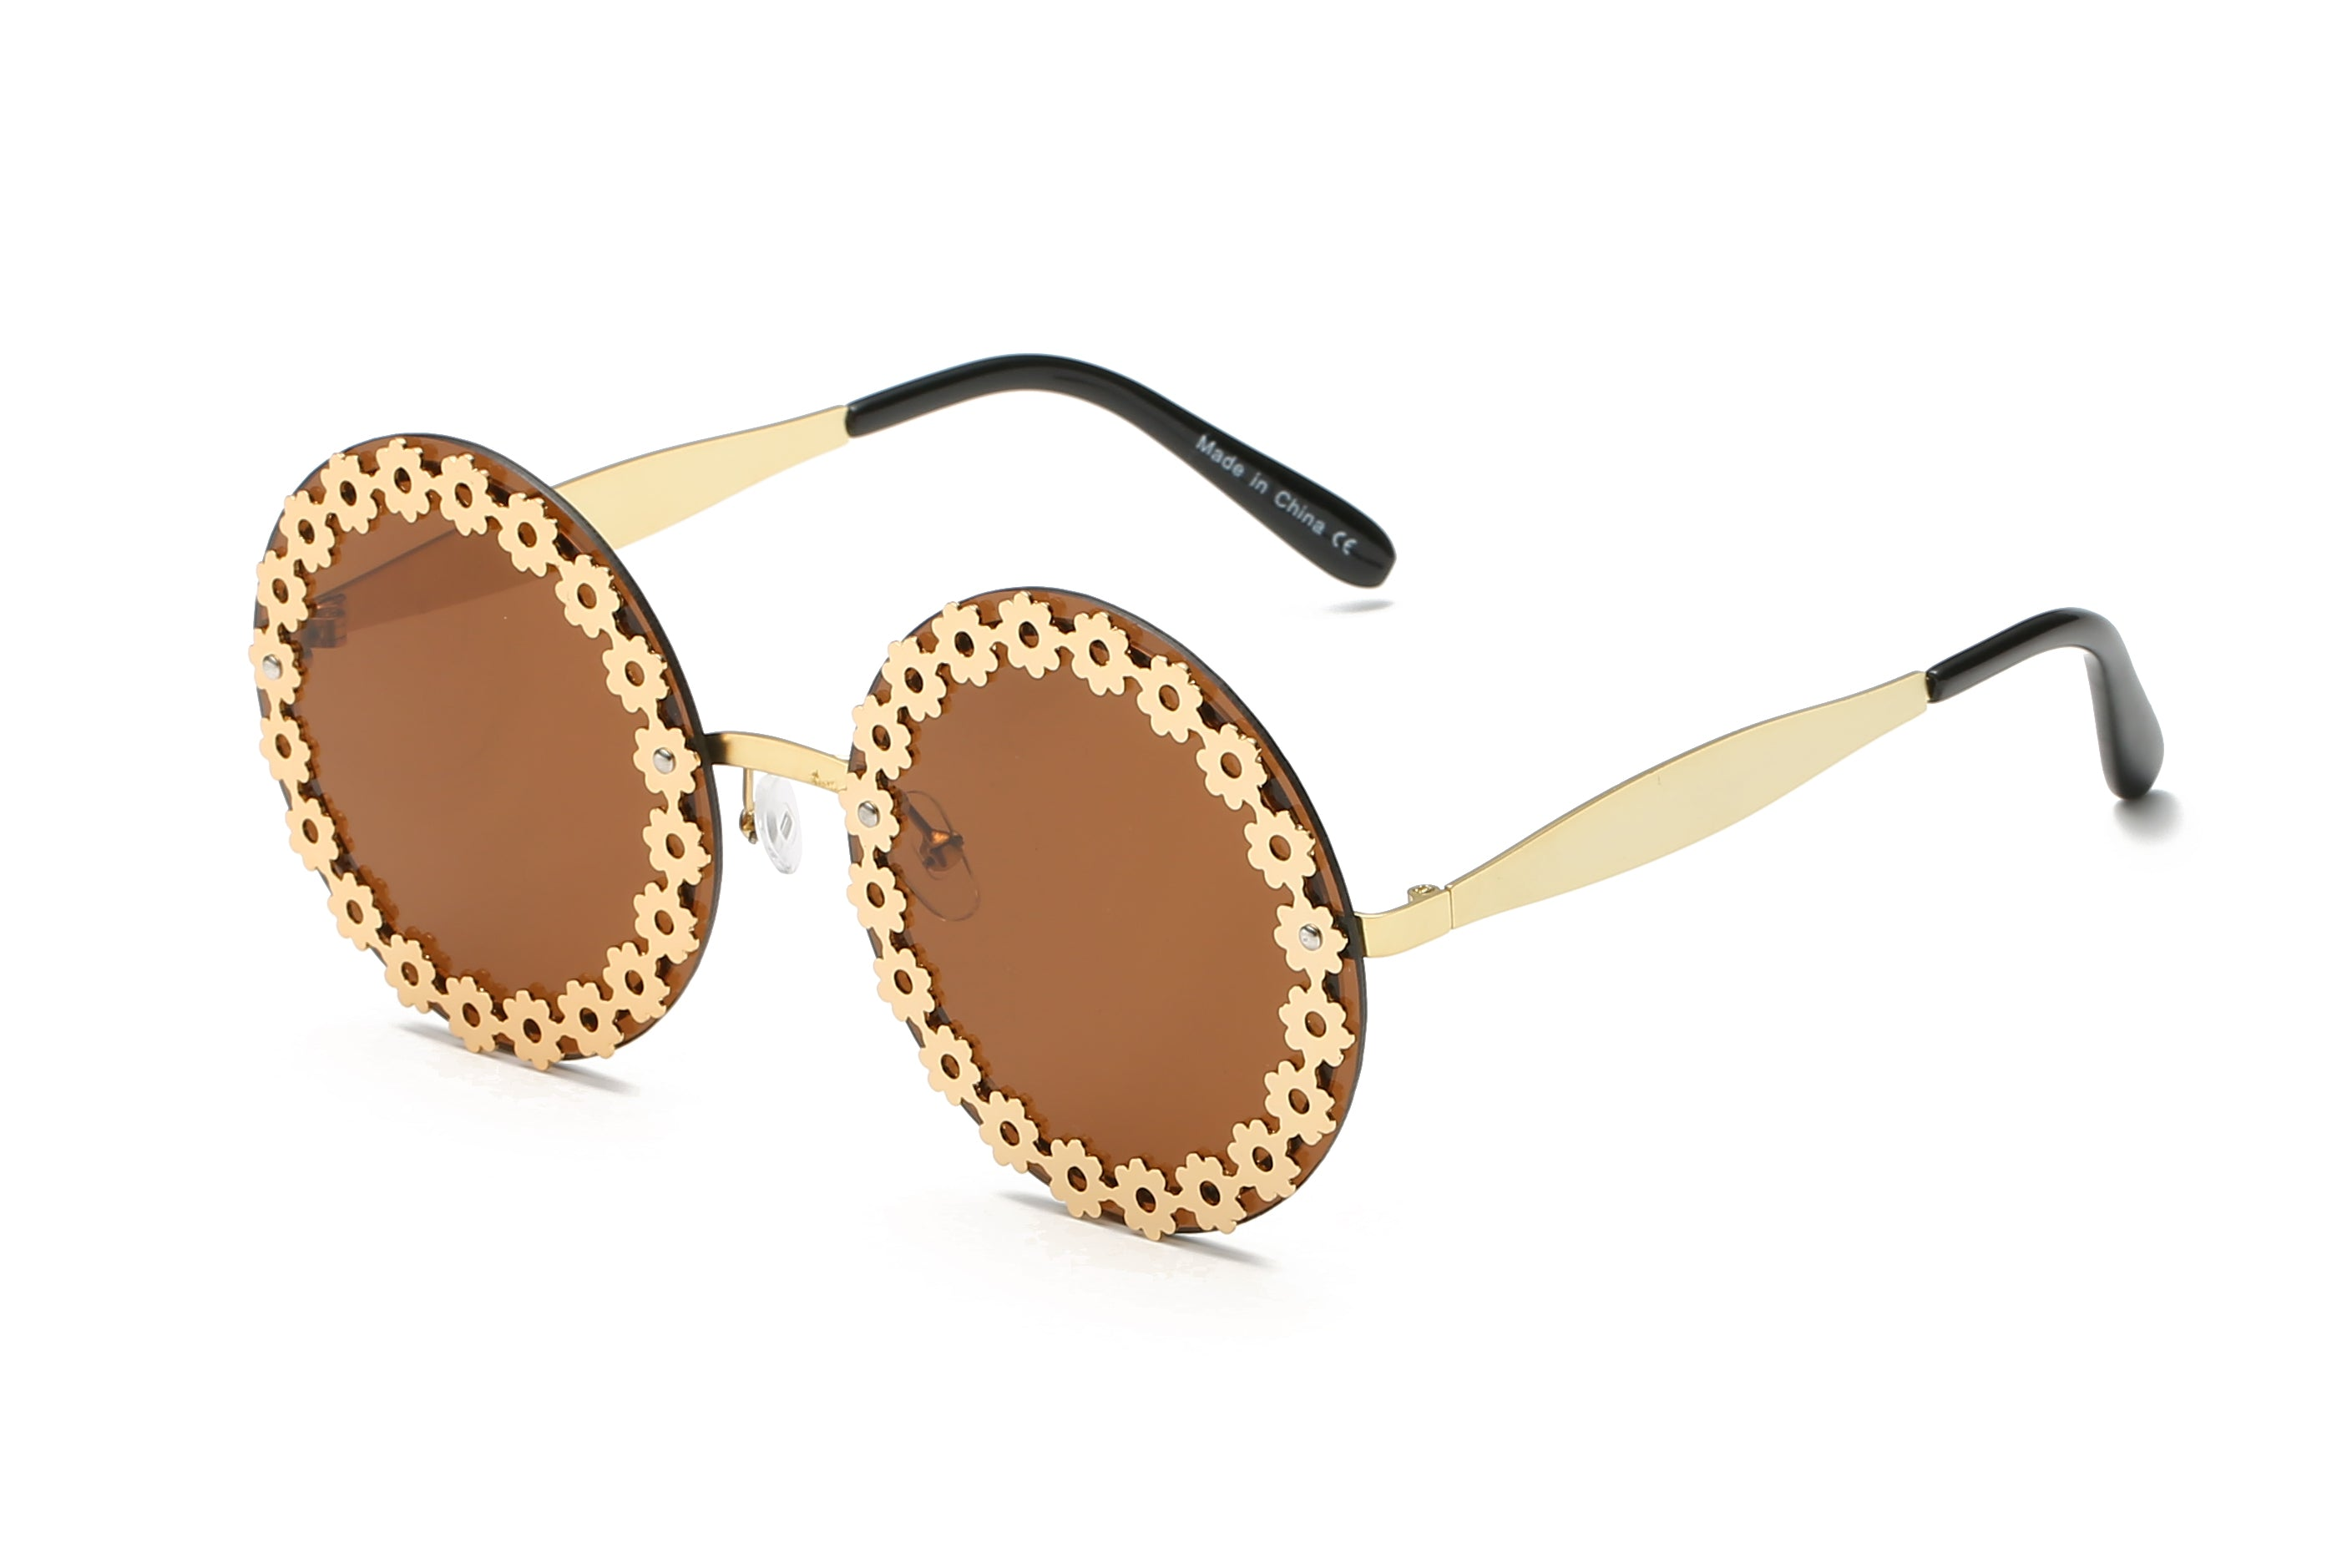 Women Retro Vintage Circle Round Mirrored UV Protection Oversized Fashion Sunglasses - Brown